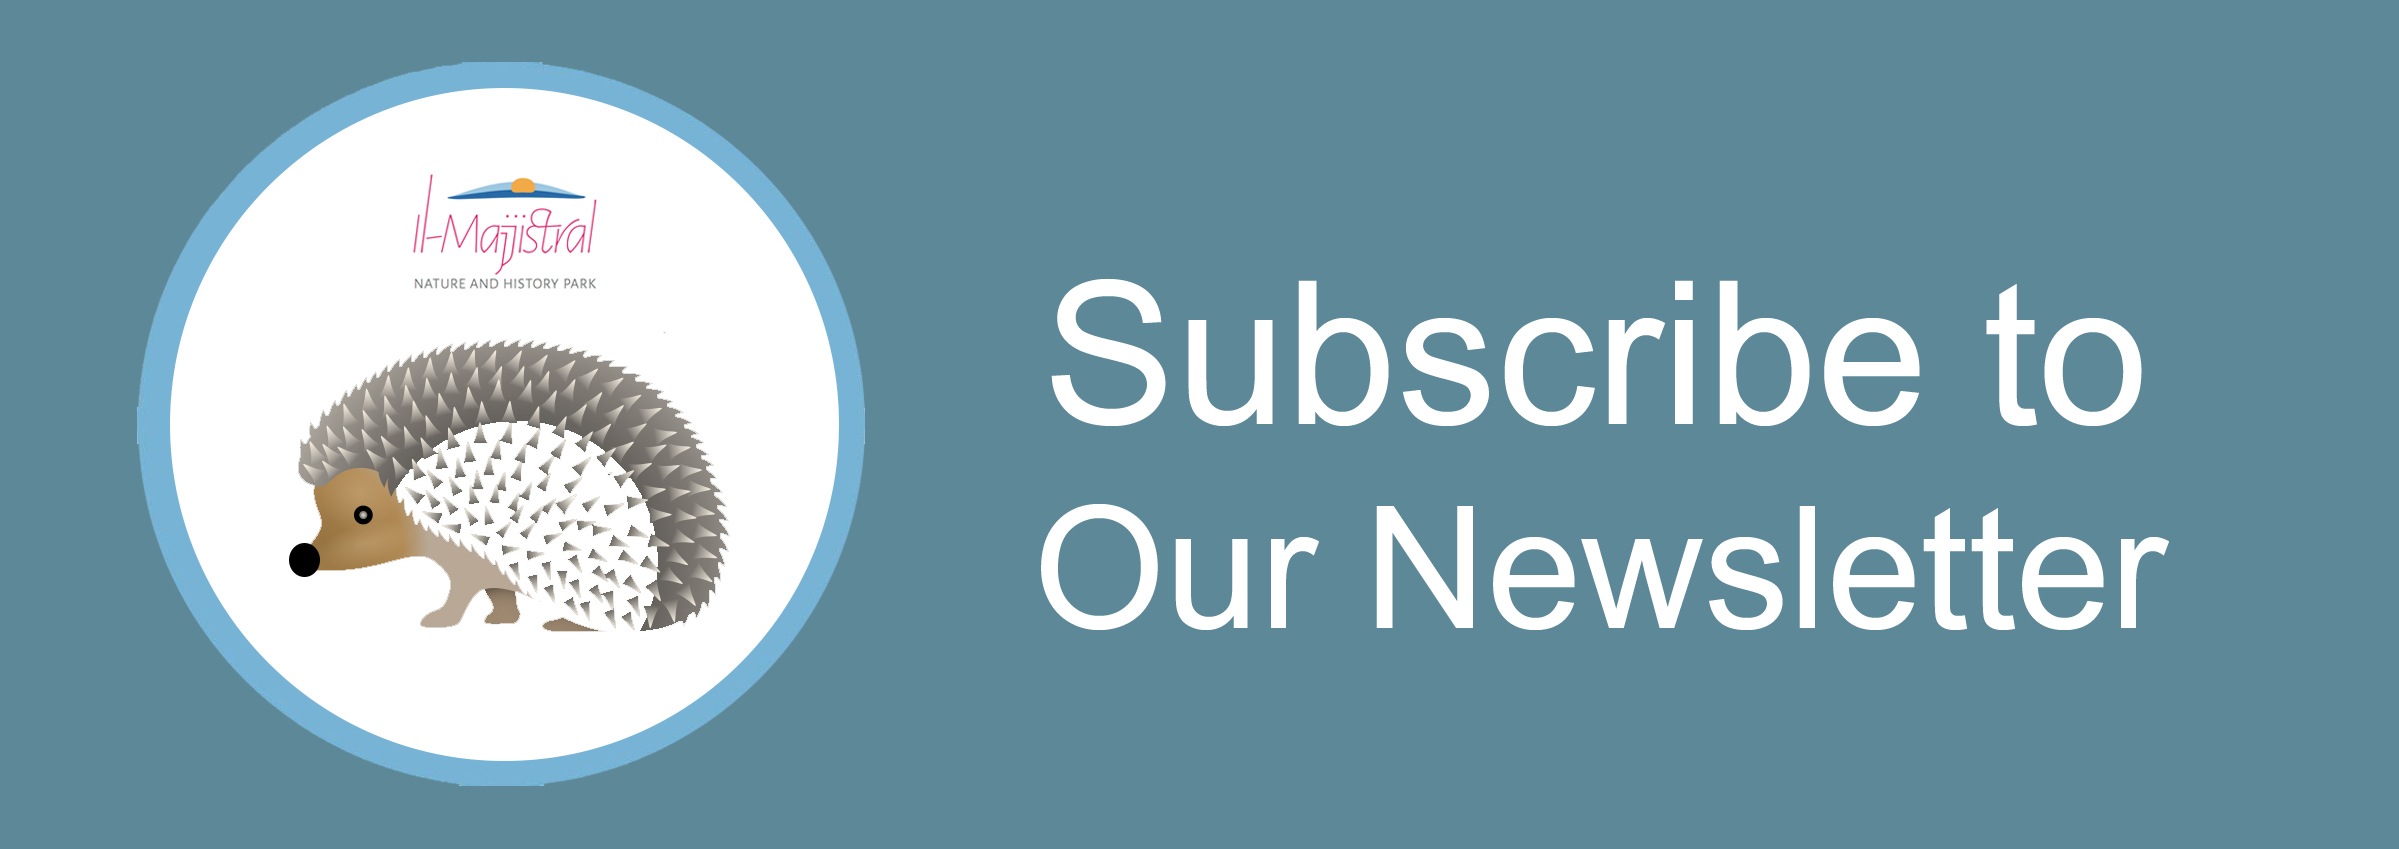 Subscribe to Majjistral Park Newsletter